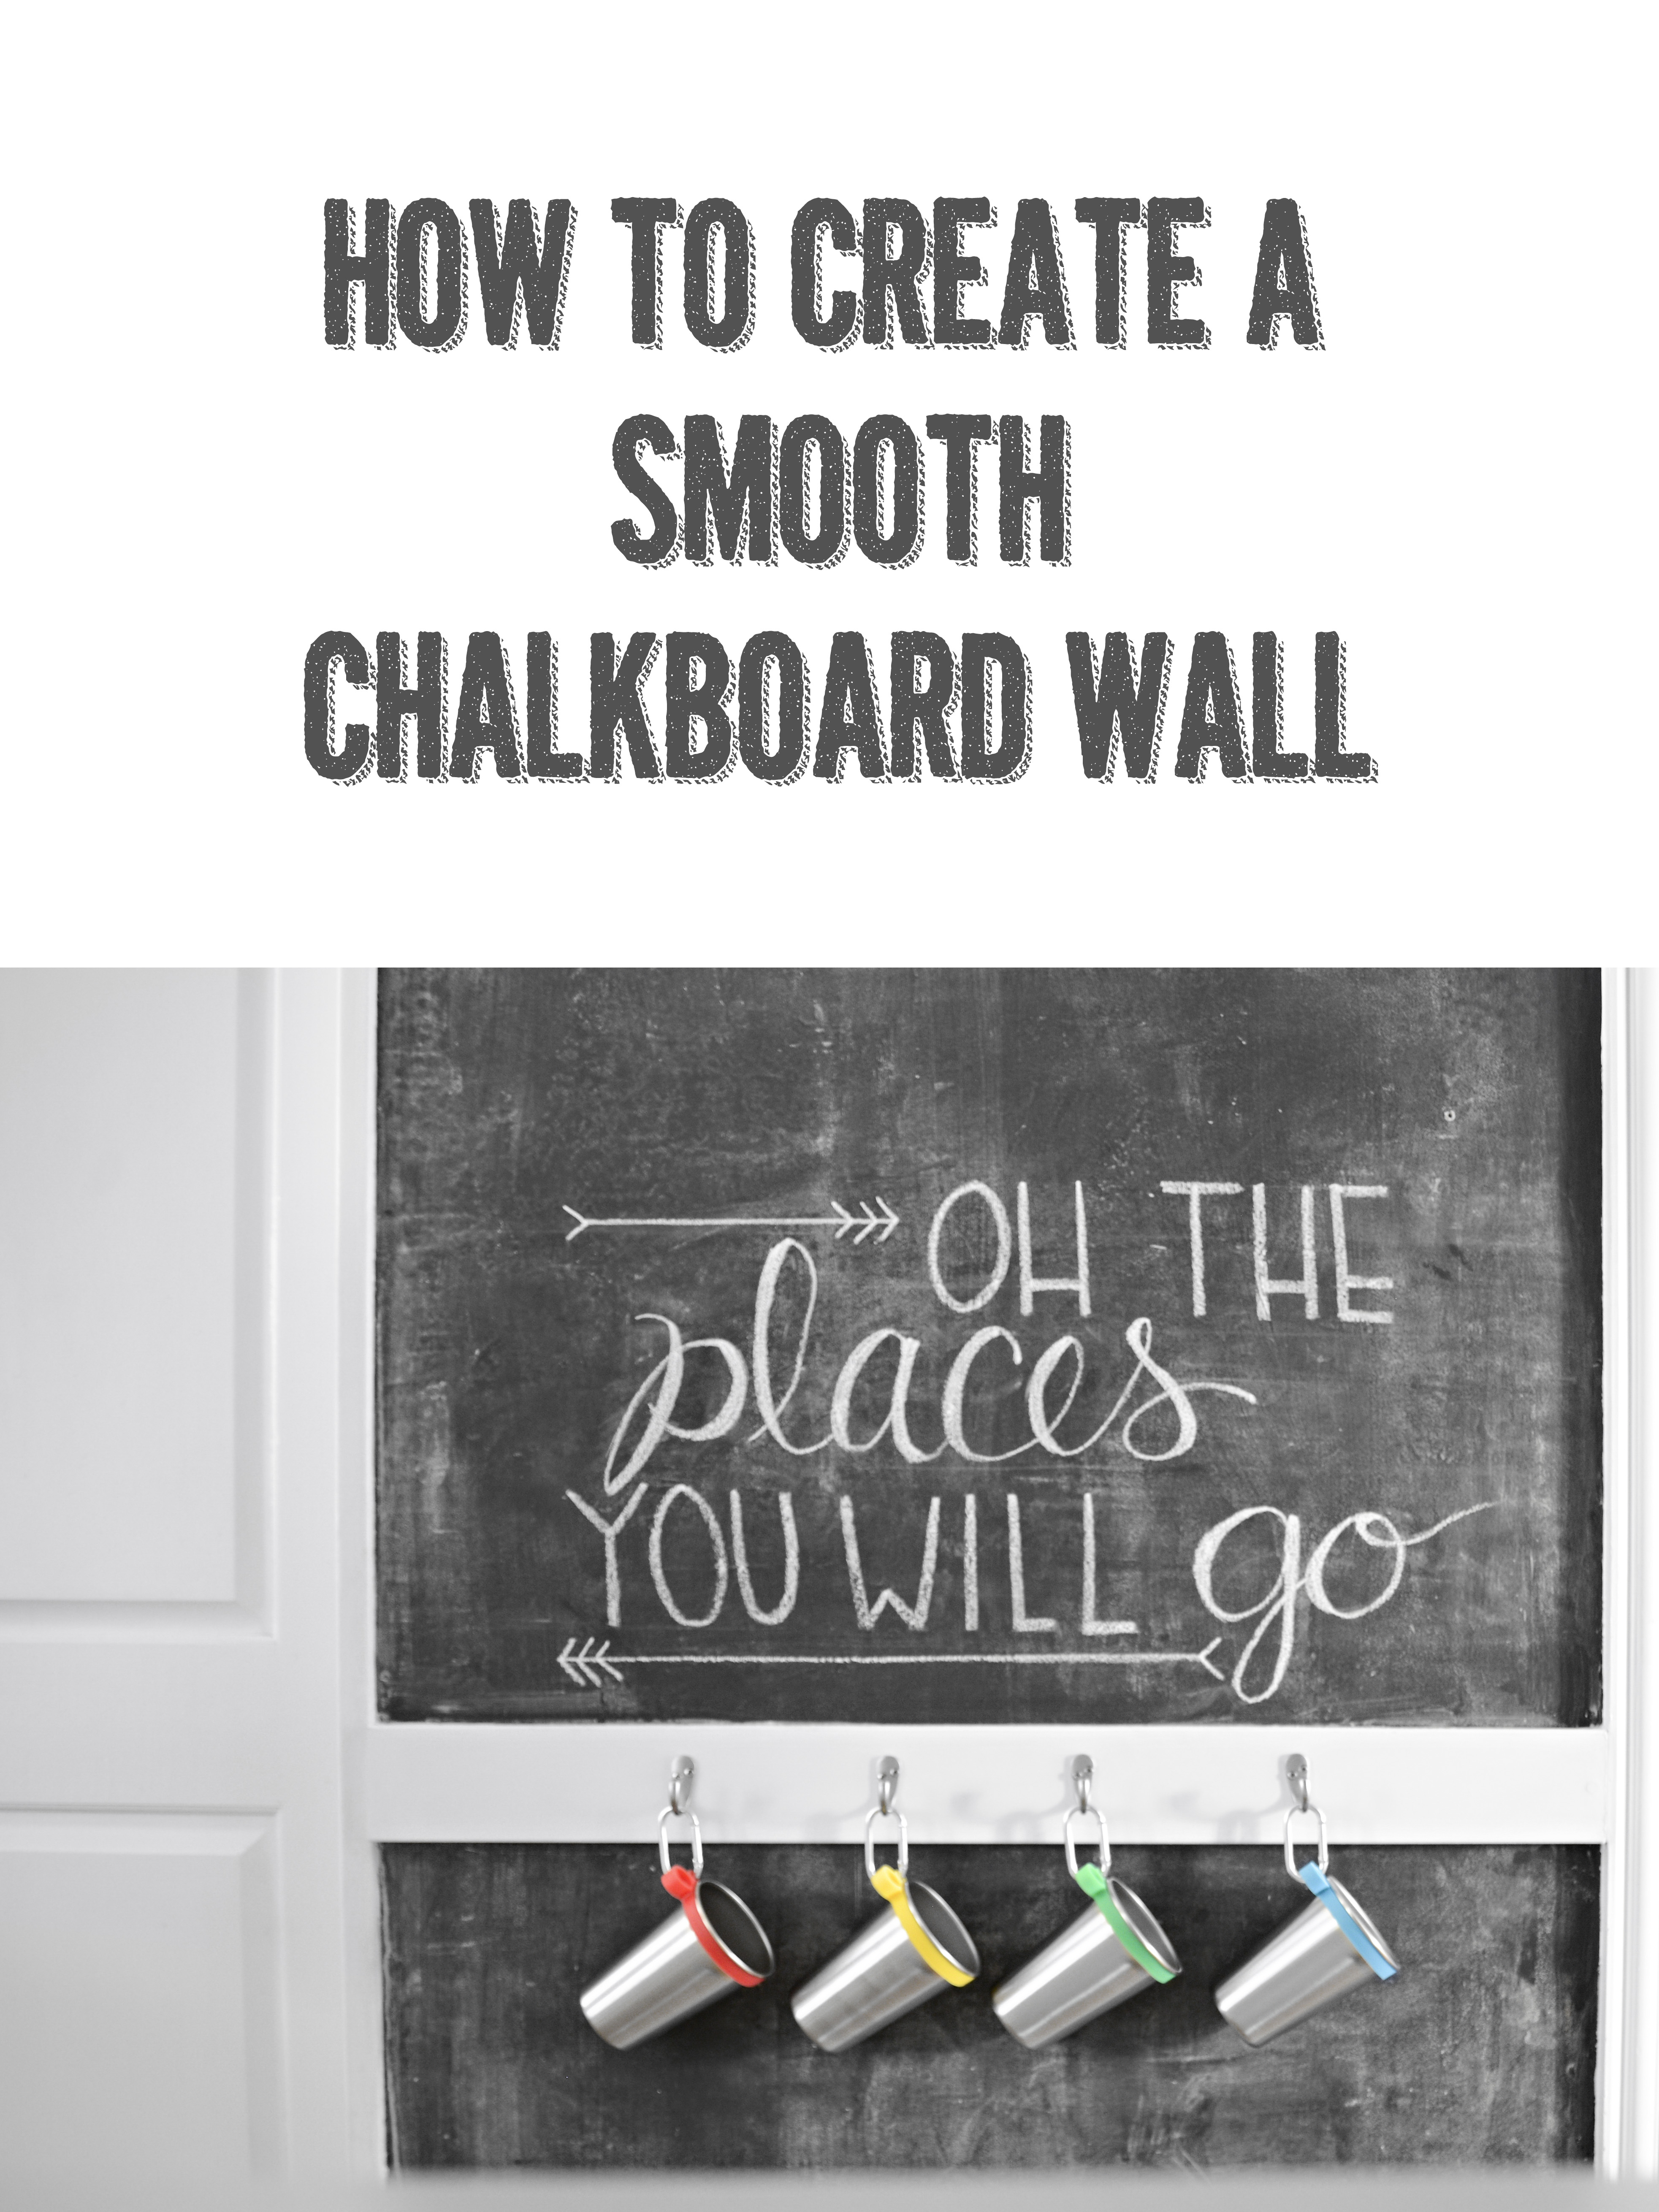 kids_cups_chalkboard_wall